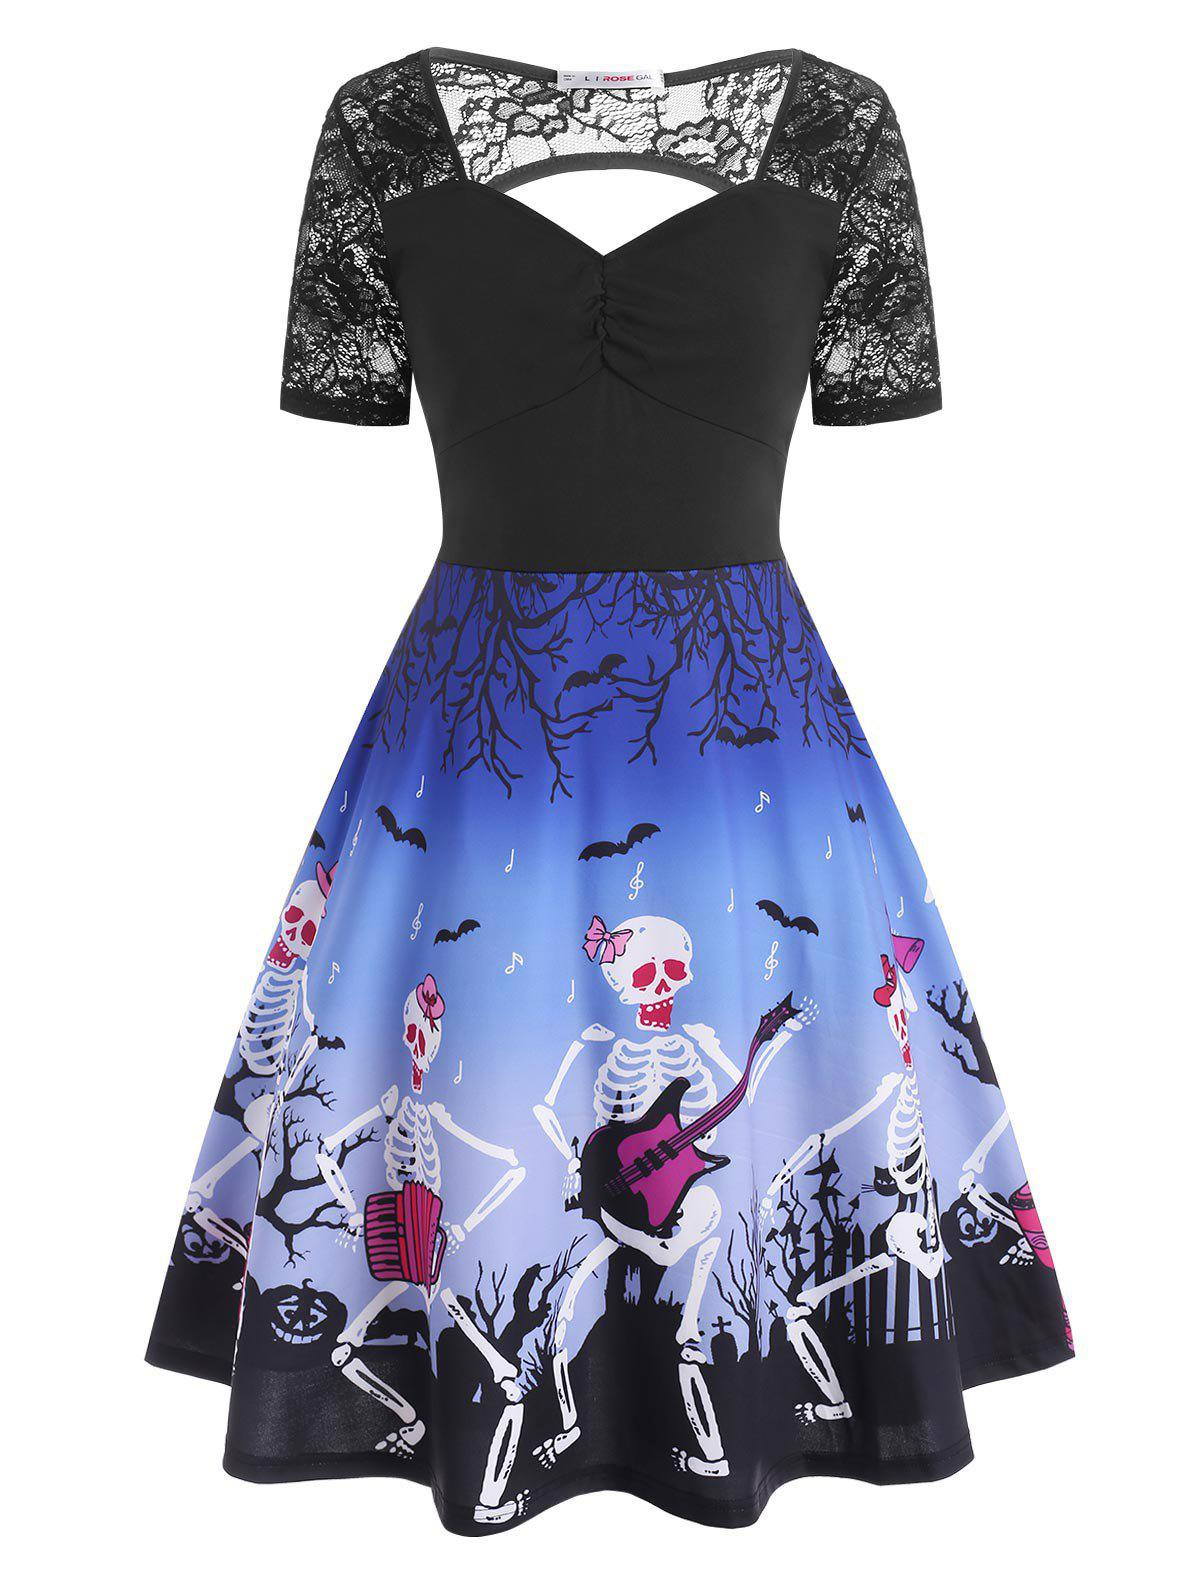 Plus Size Skeleton Playing Guitar Cutout Halloween Dress - BLUE 5X